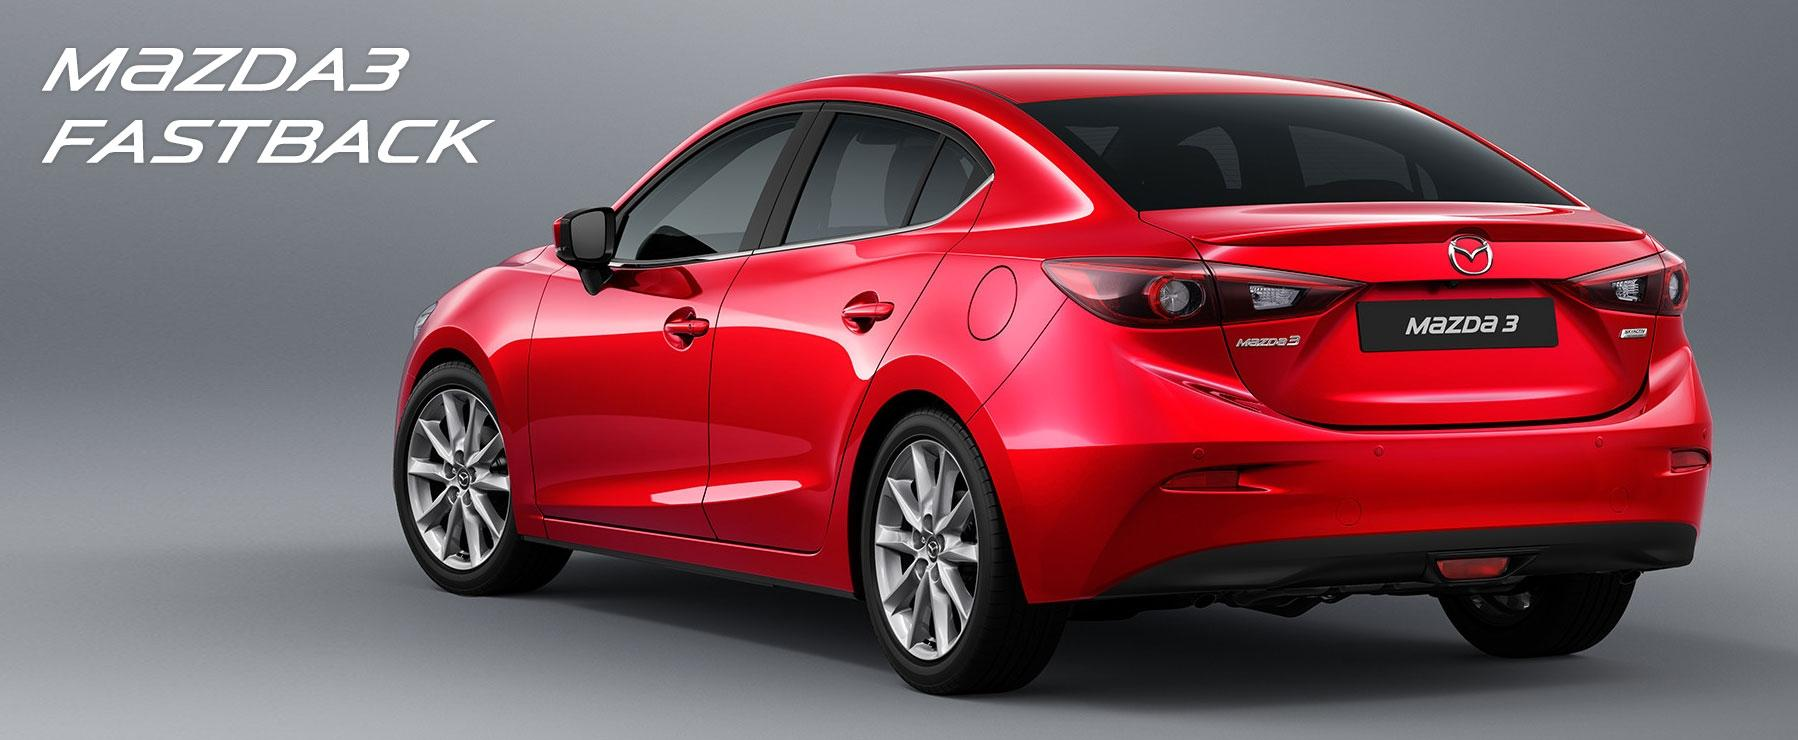 mazda 3 fastback overview perrys mazda in the uk. Black Bedroom Furniture Sets. Home Design Ideas